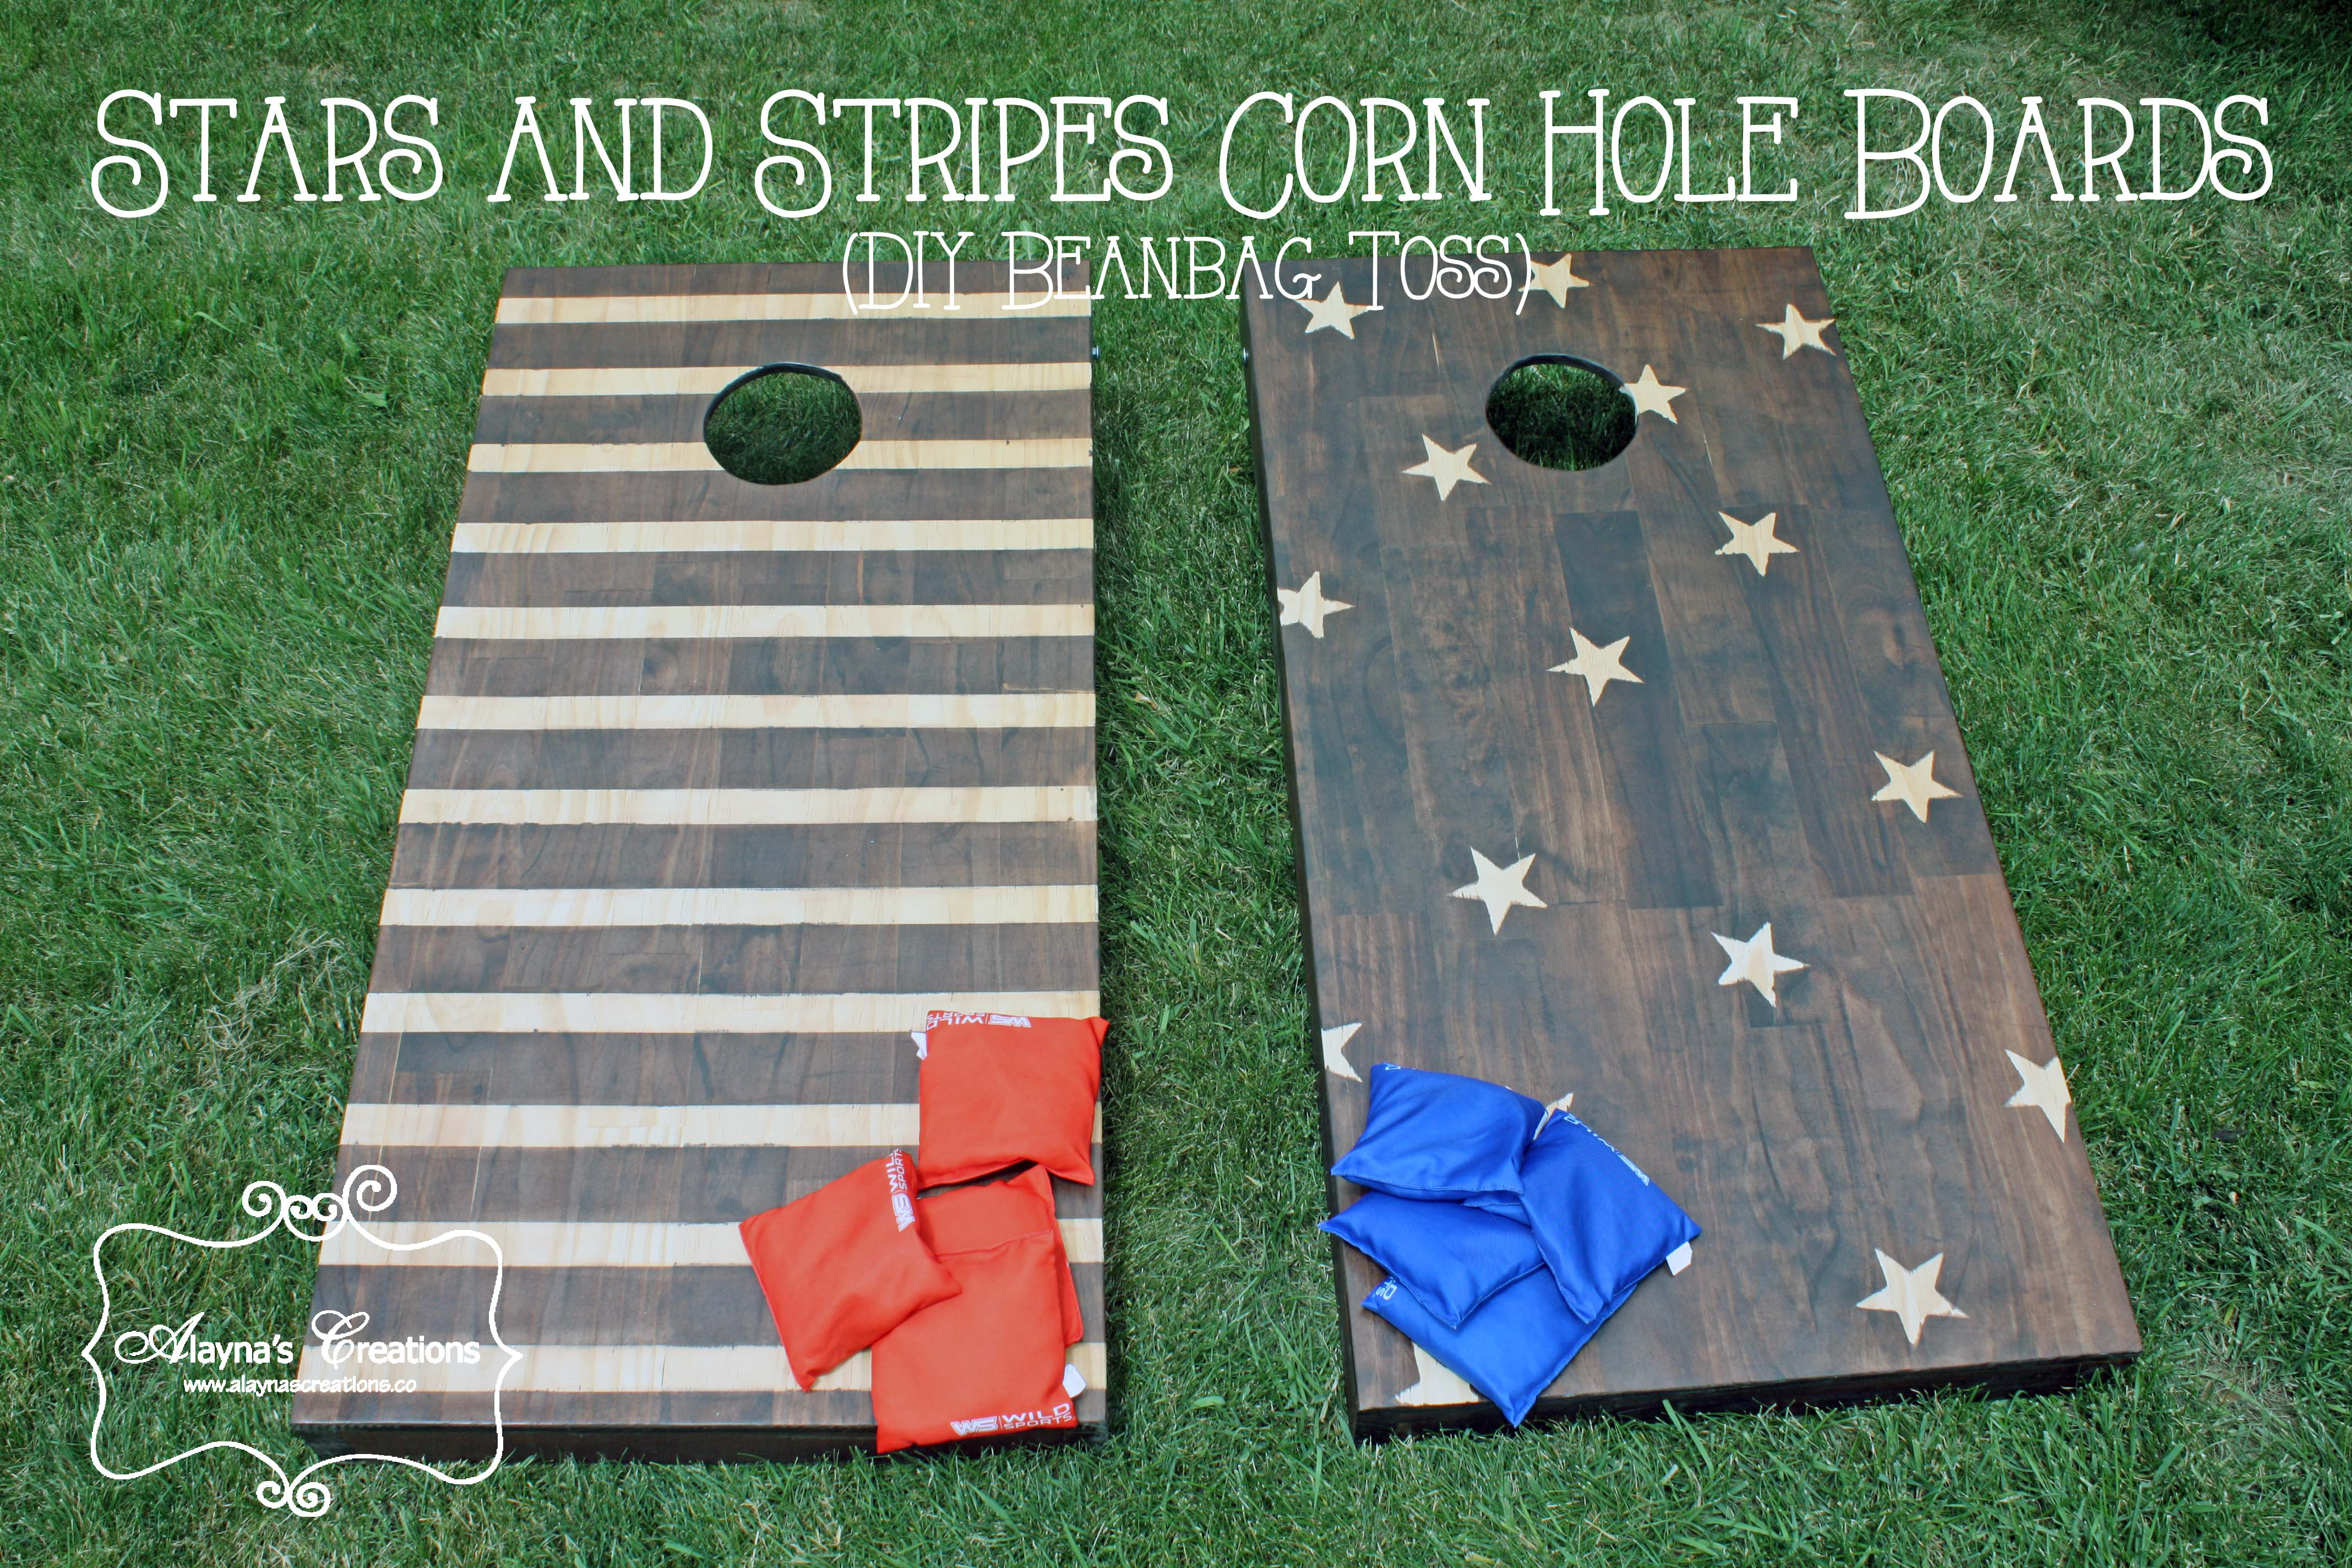 stars and stripes corn hole boards diy beanbag toss yard game - Cornhole Boards For Sale